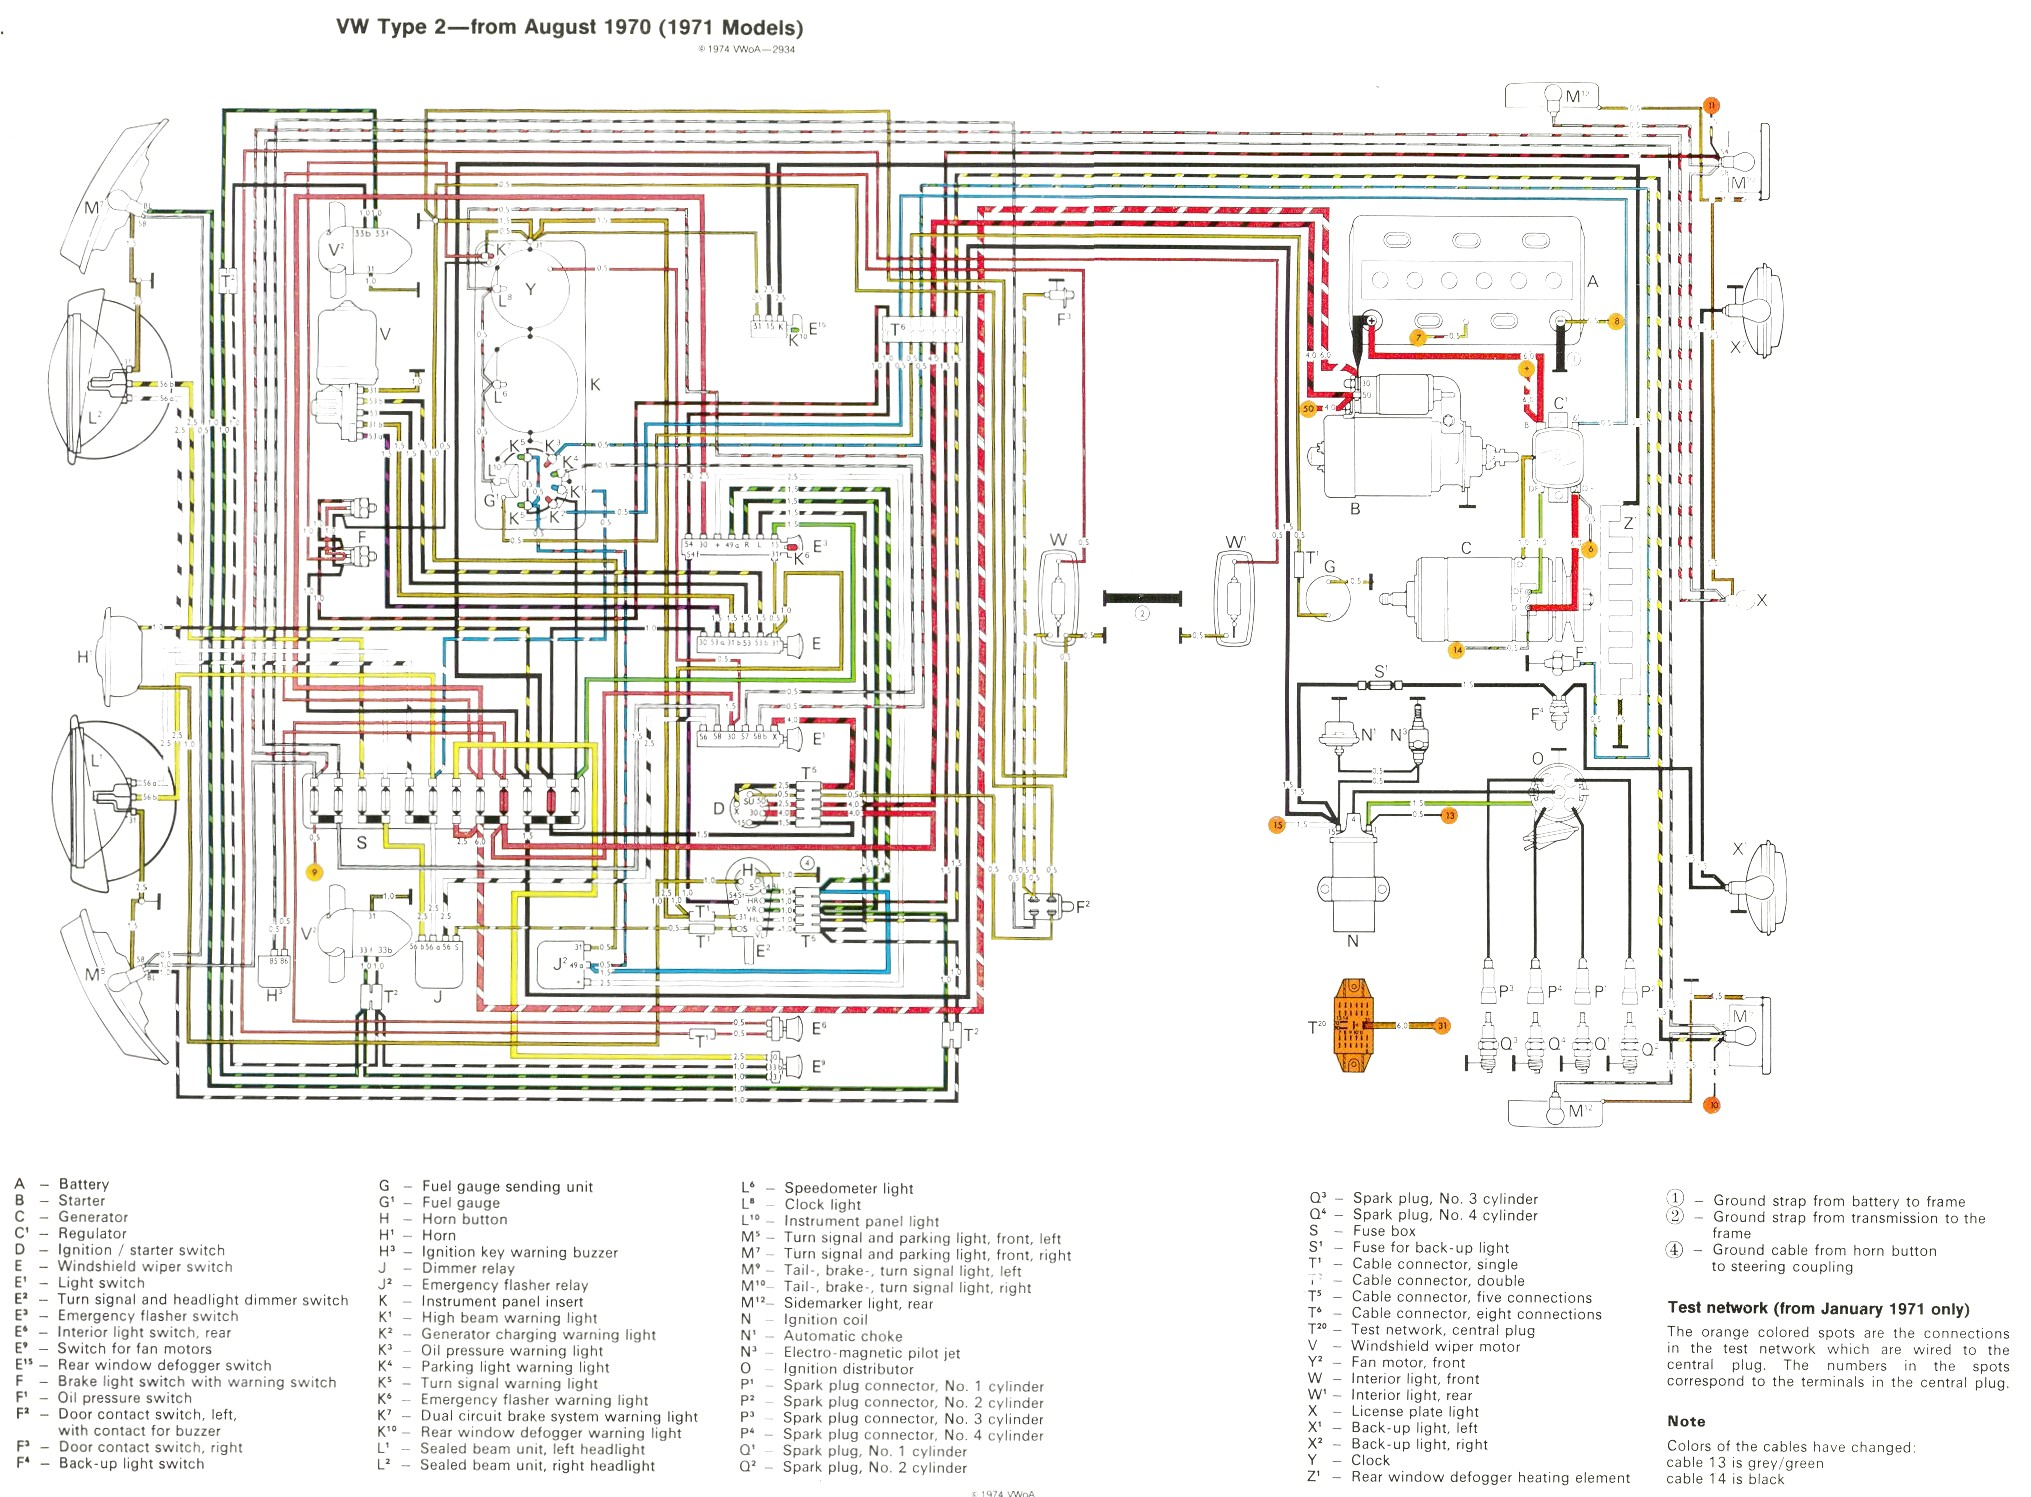 bus 70 71 baywindow fusebox layout 1971 vw bus wiring diagram at bayanpartner.co